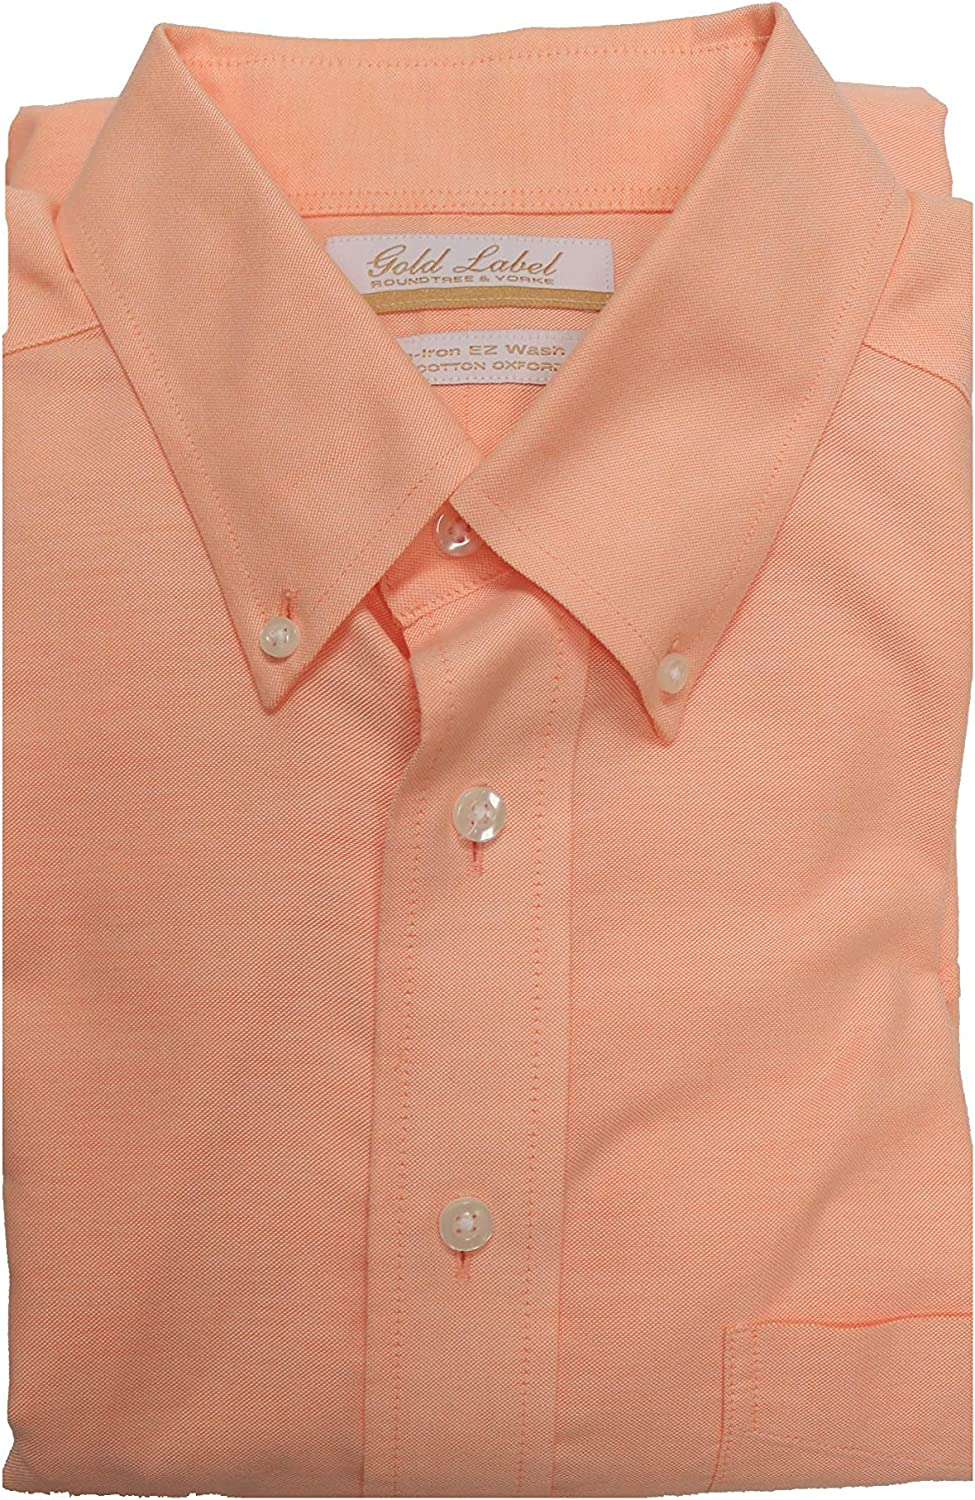 Gold Label Roundtree /& Yorke Non-Iron Regular Button Down Solid Dress Shirt S65DG012 Peach